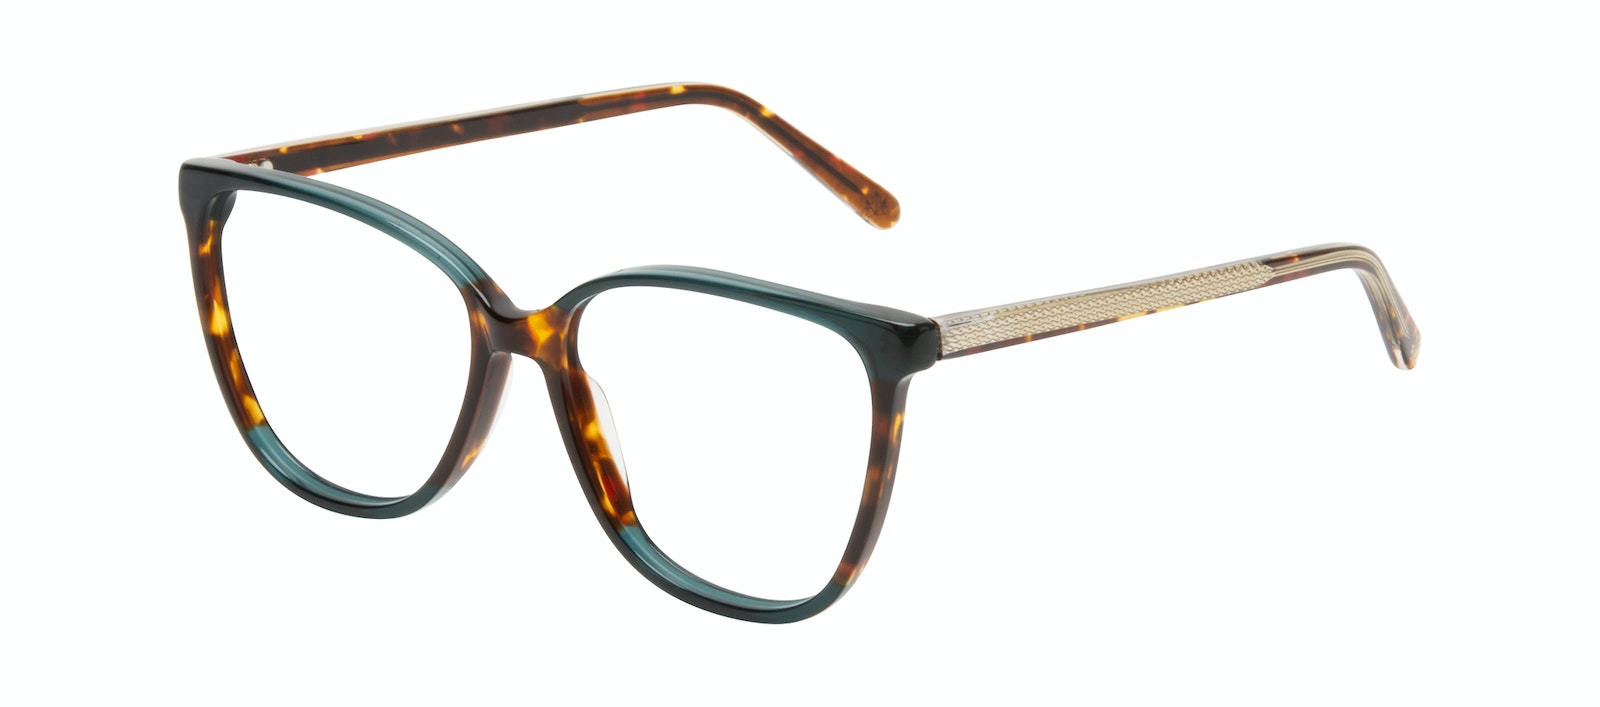 Affordable Fashion Glasses Square Eyeglasses Women Flora Pine Tilt